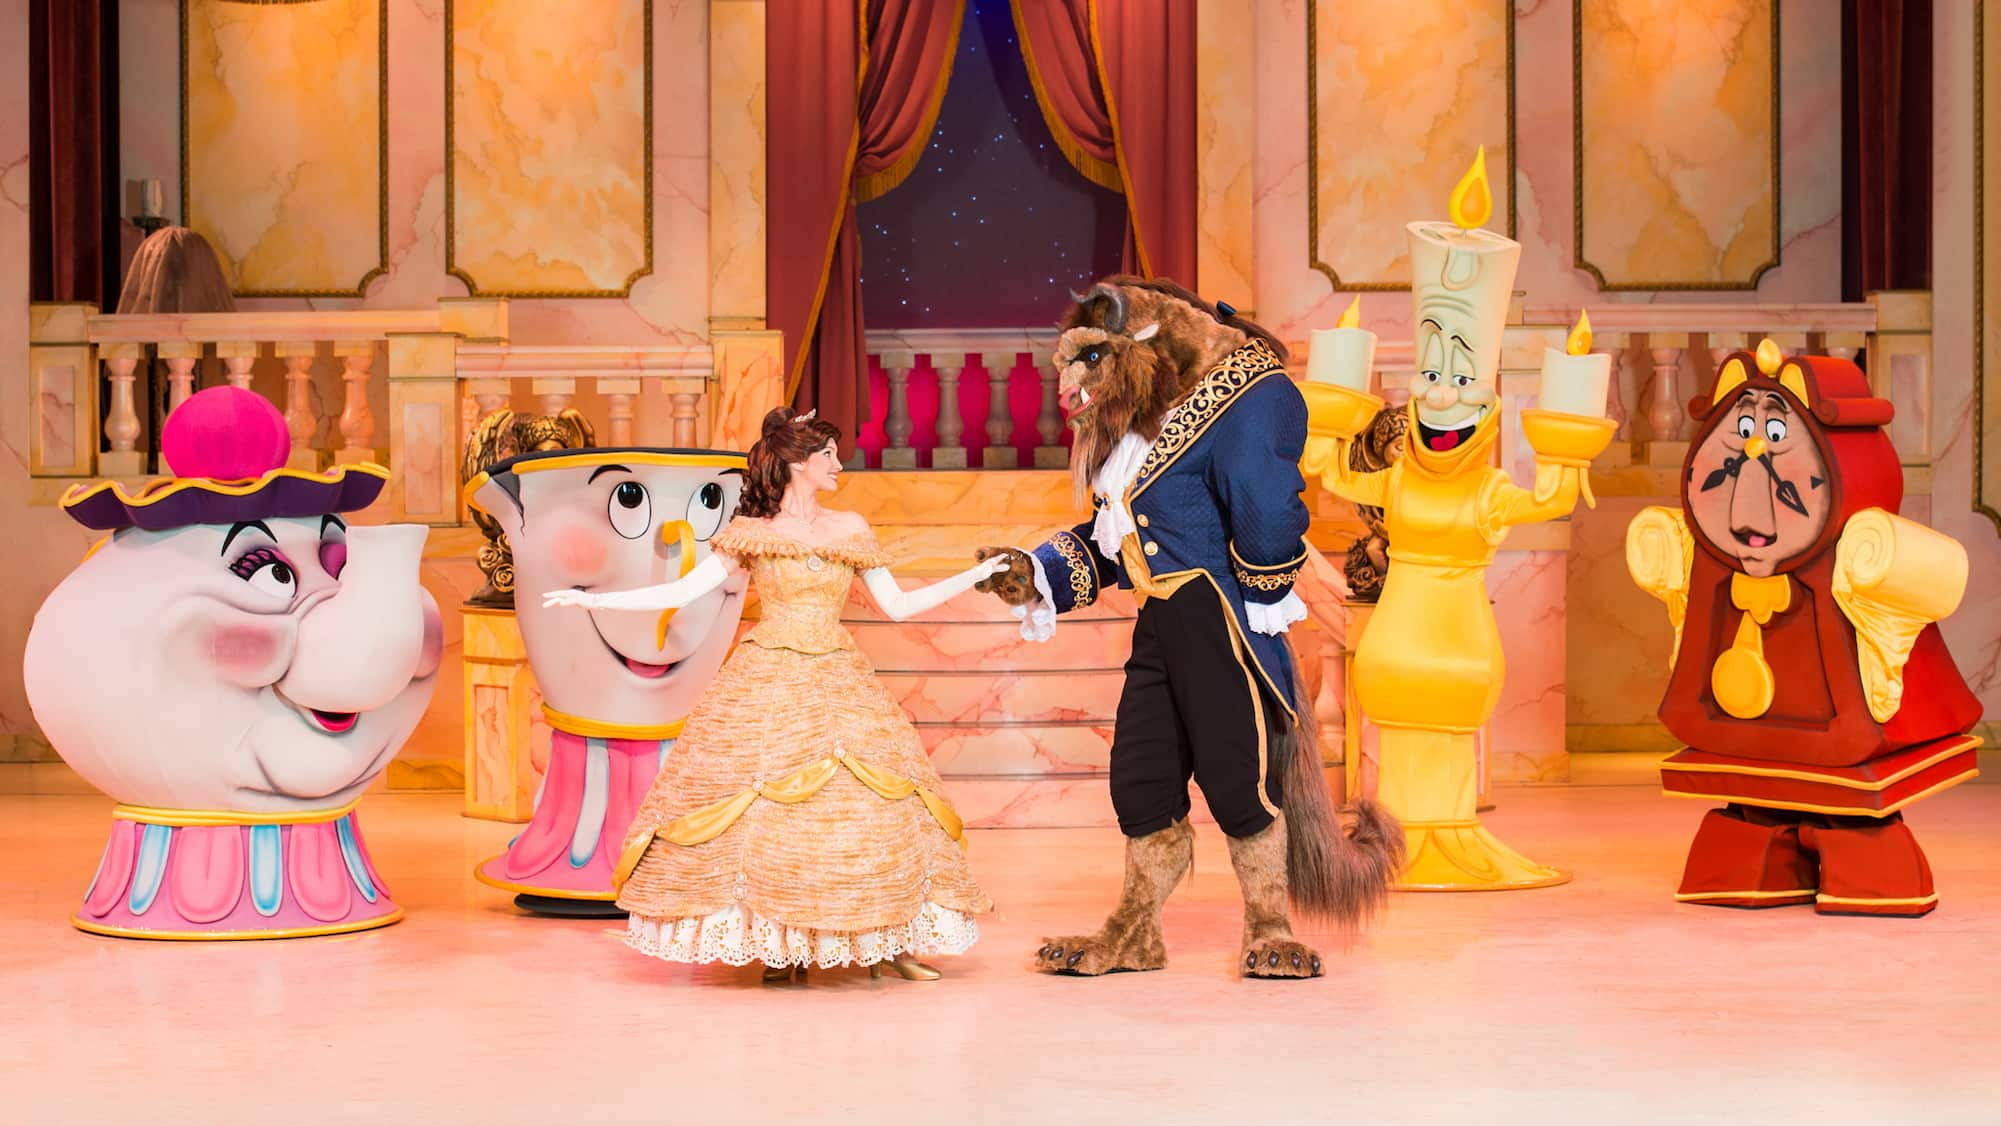 The Beast dances with Belle on stage while Lumiere, Cogsworth, Mrs. Potts and Chip look on in glee